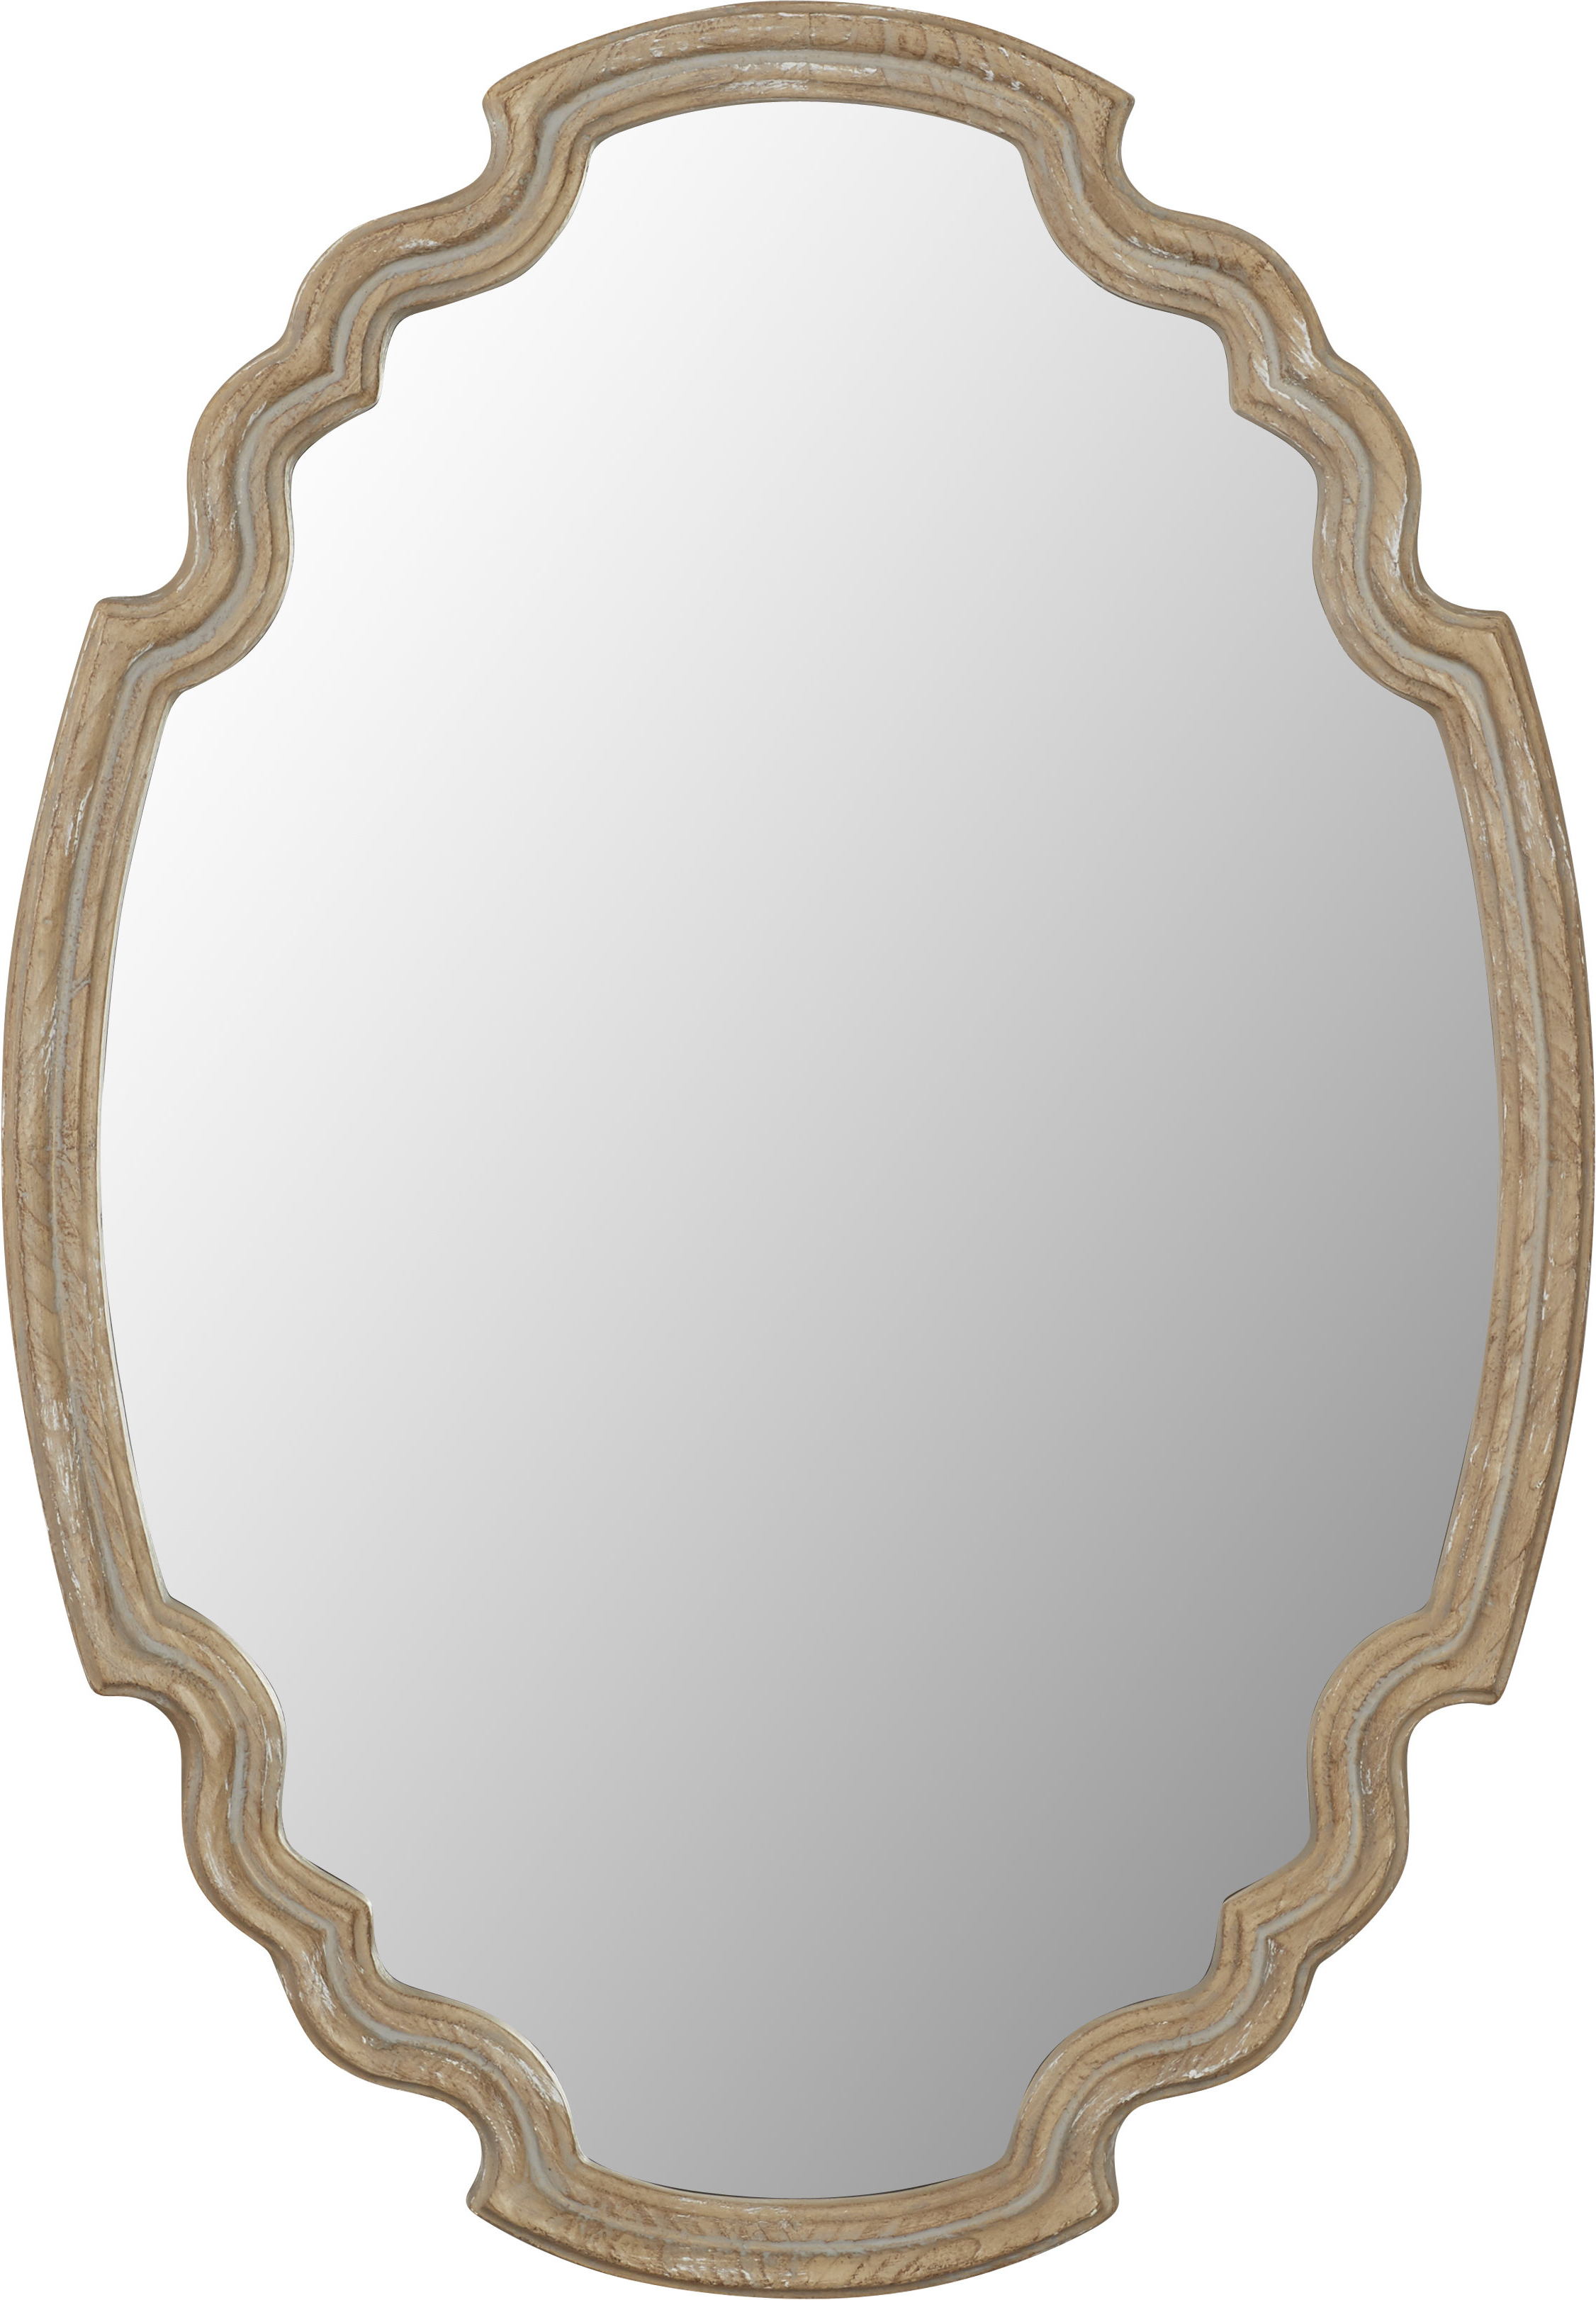 Best And Newest Wood Accent Mirror Intended For Gingerich Resin Modern & Contemporary Accent Mirrors (View 6 of 20)